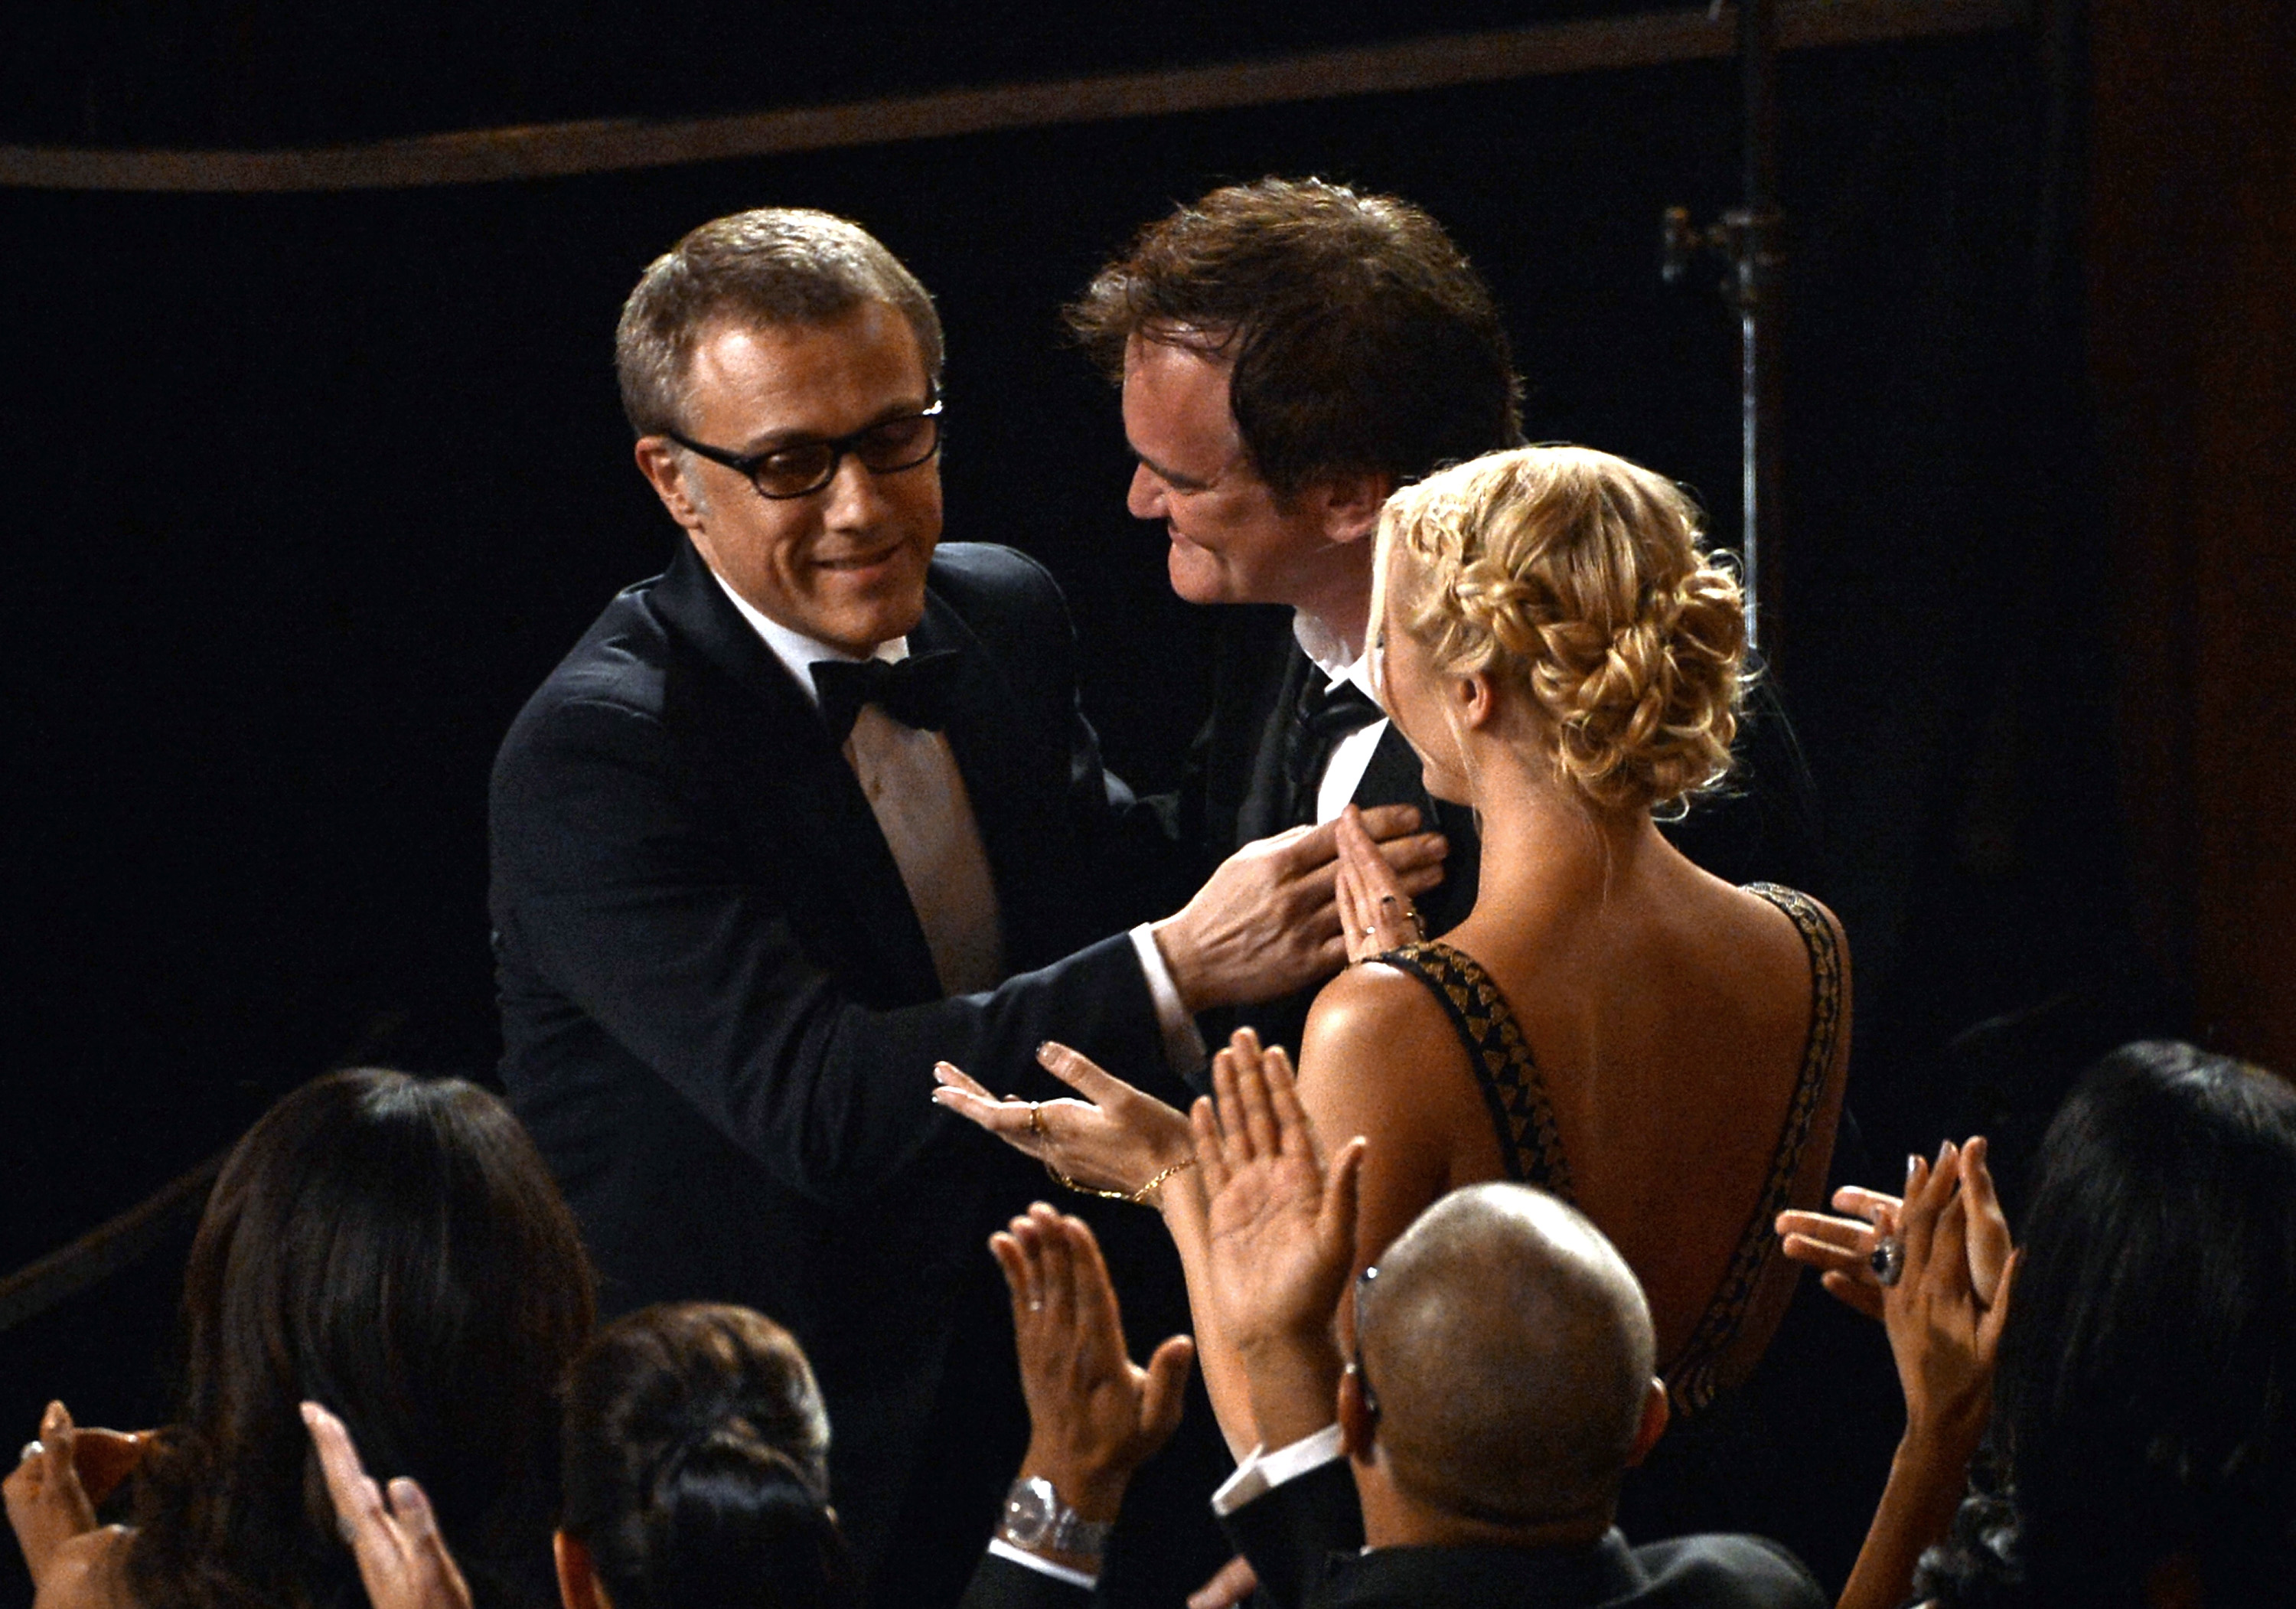 Christoph Waltz bonded with his Django Unchained director, Quentin Tarantino.